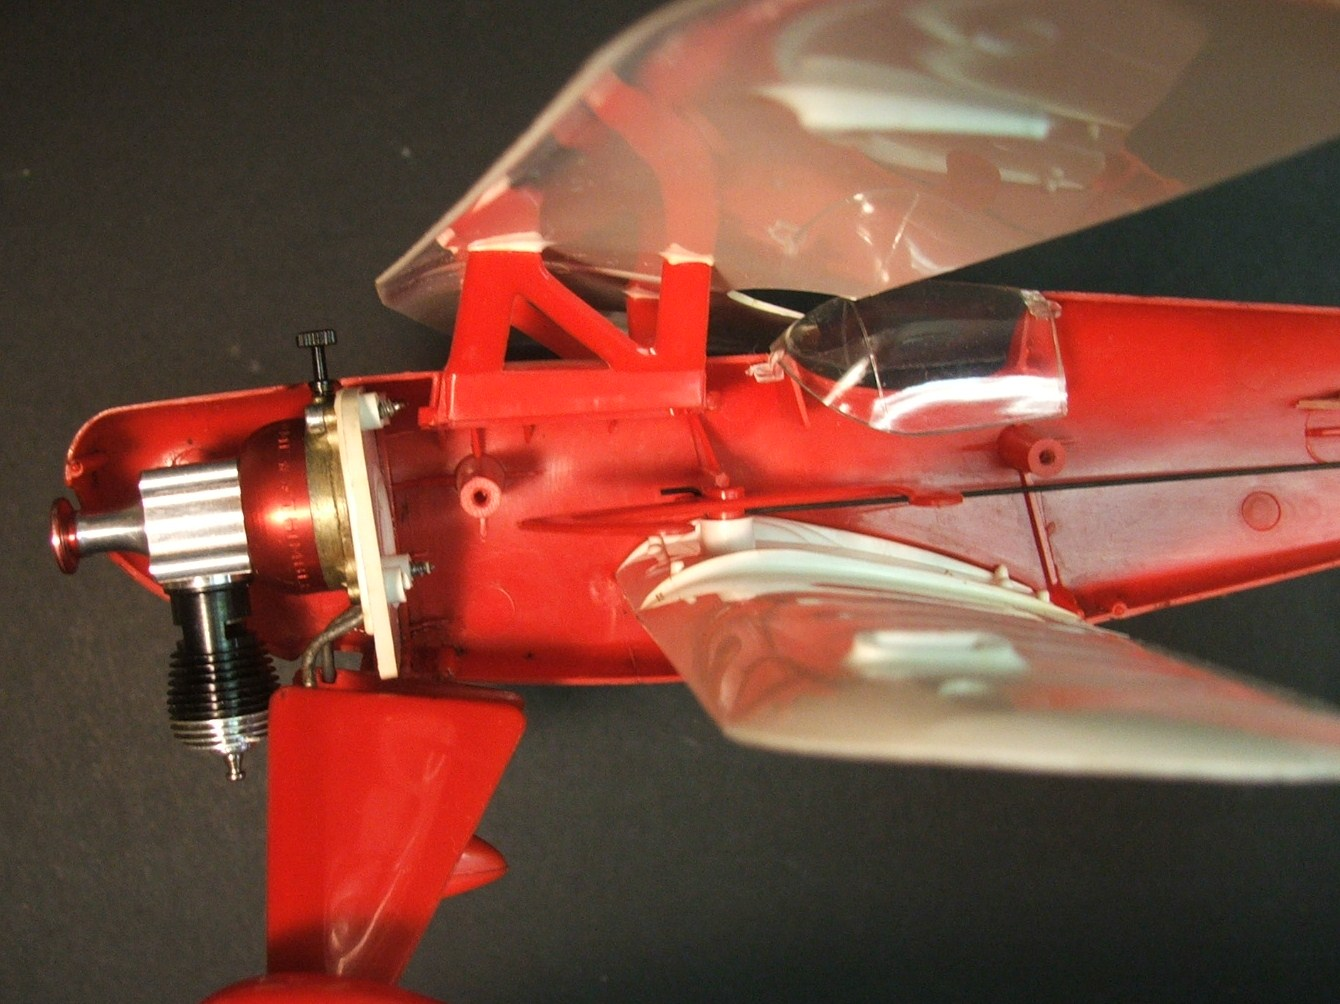 It's the Pitts…. Wen-ma10